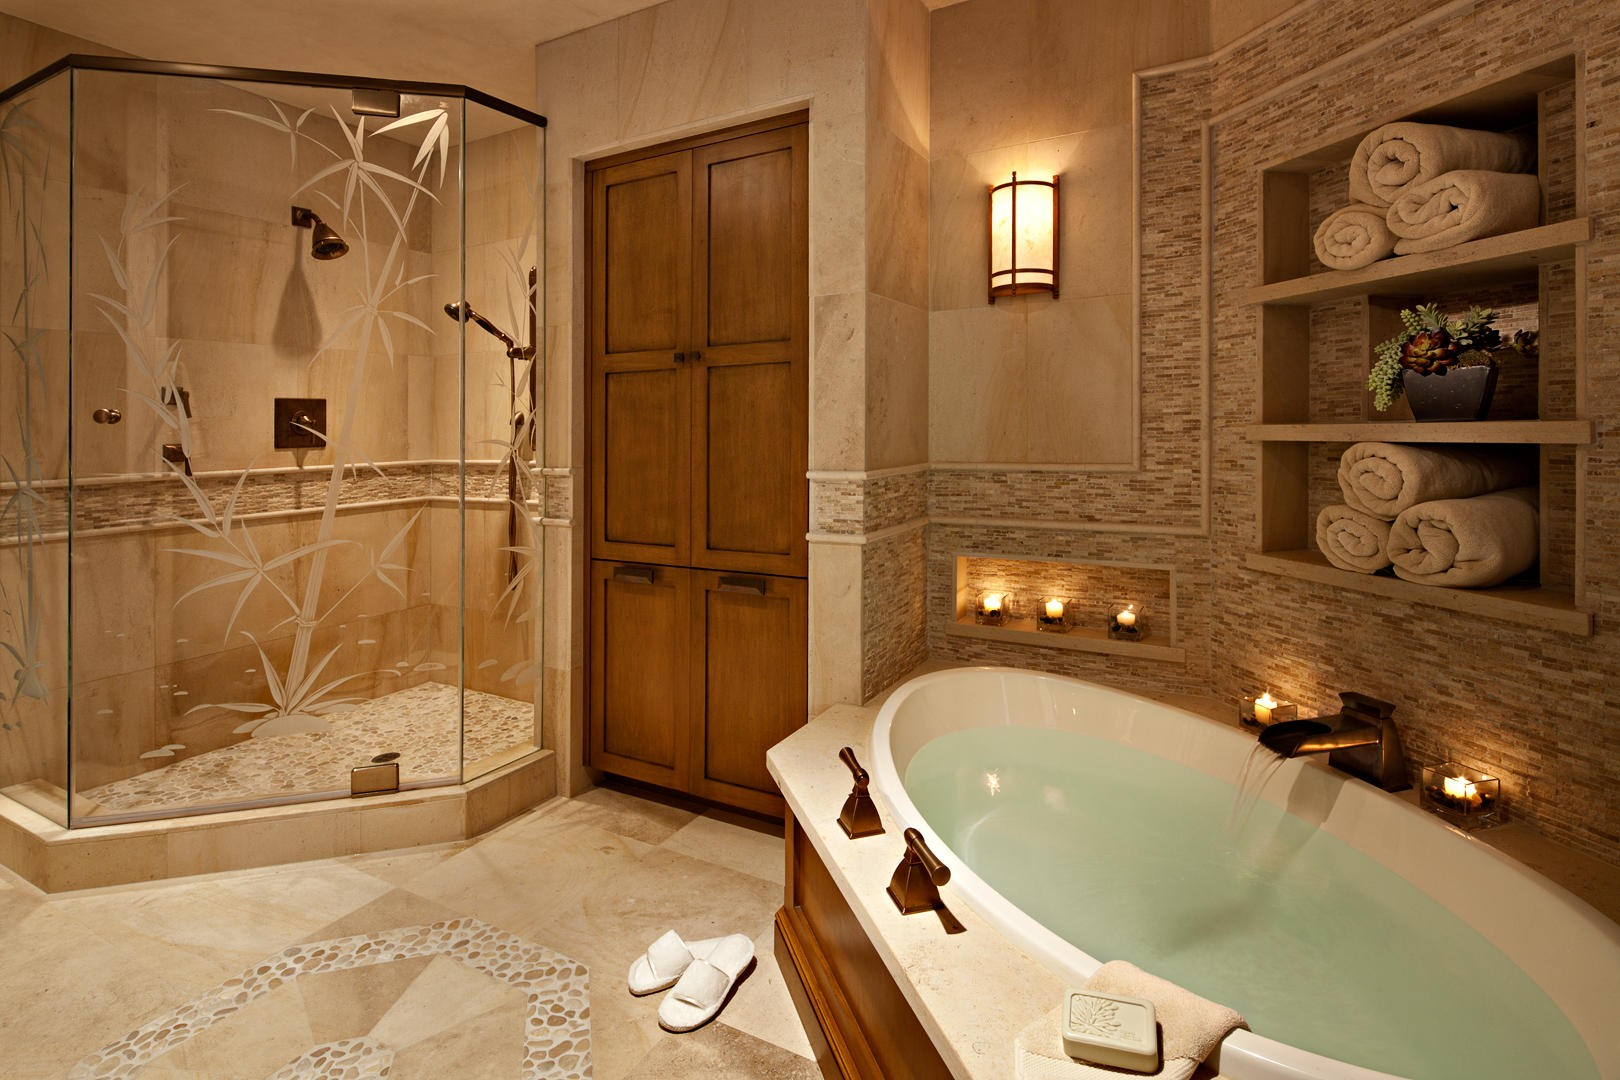 Spa bathroom ideas pictures